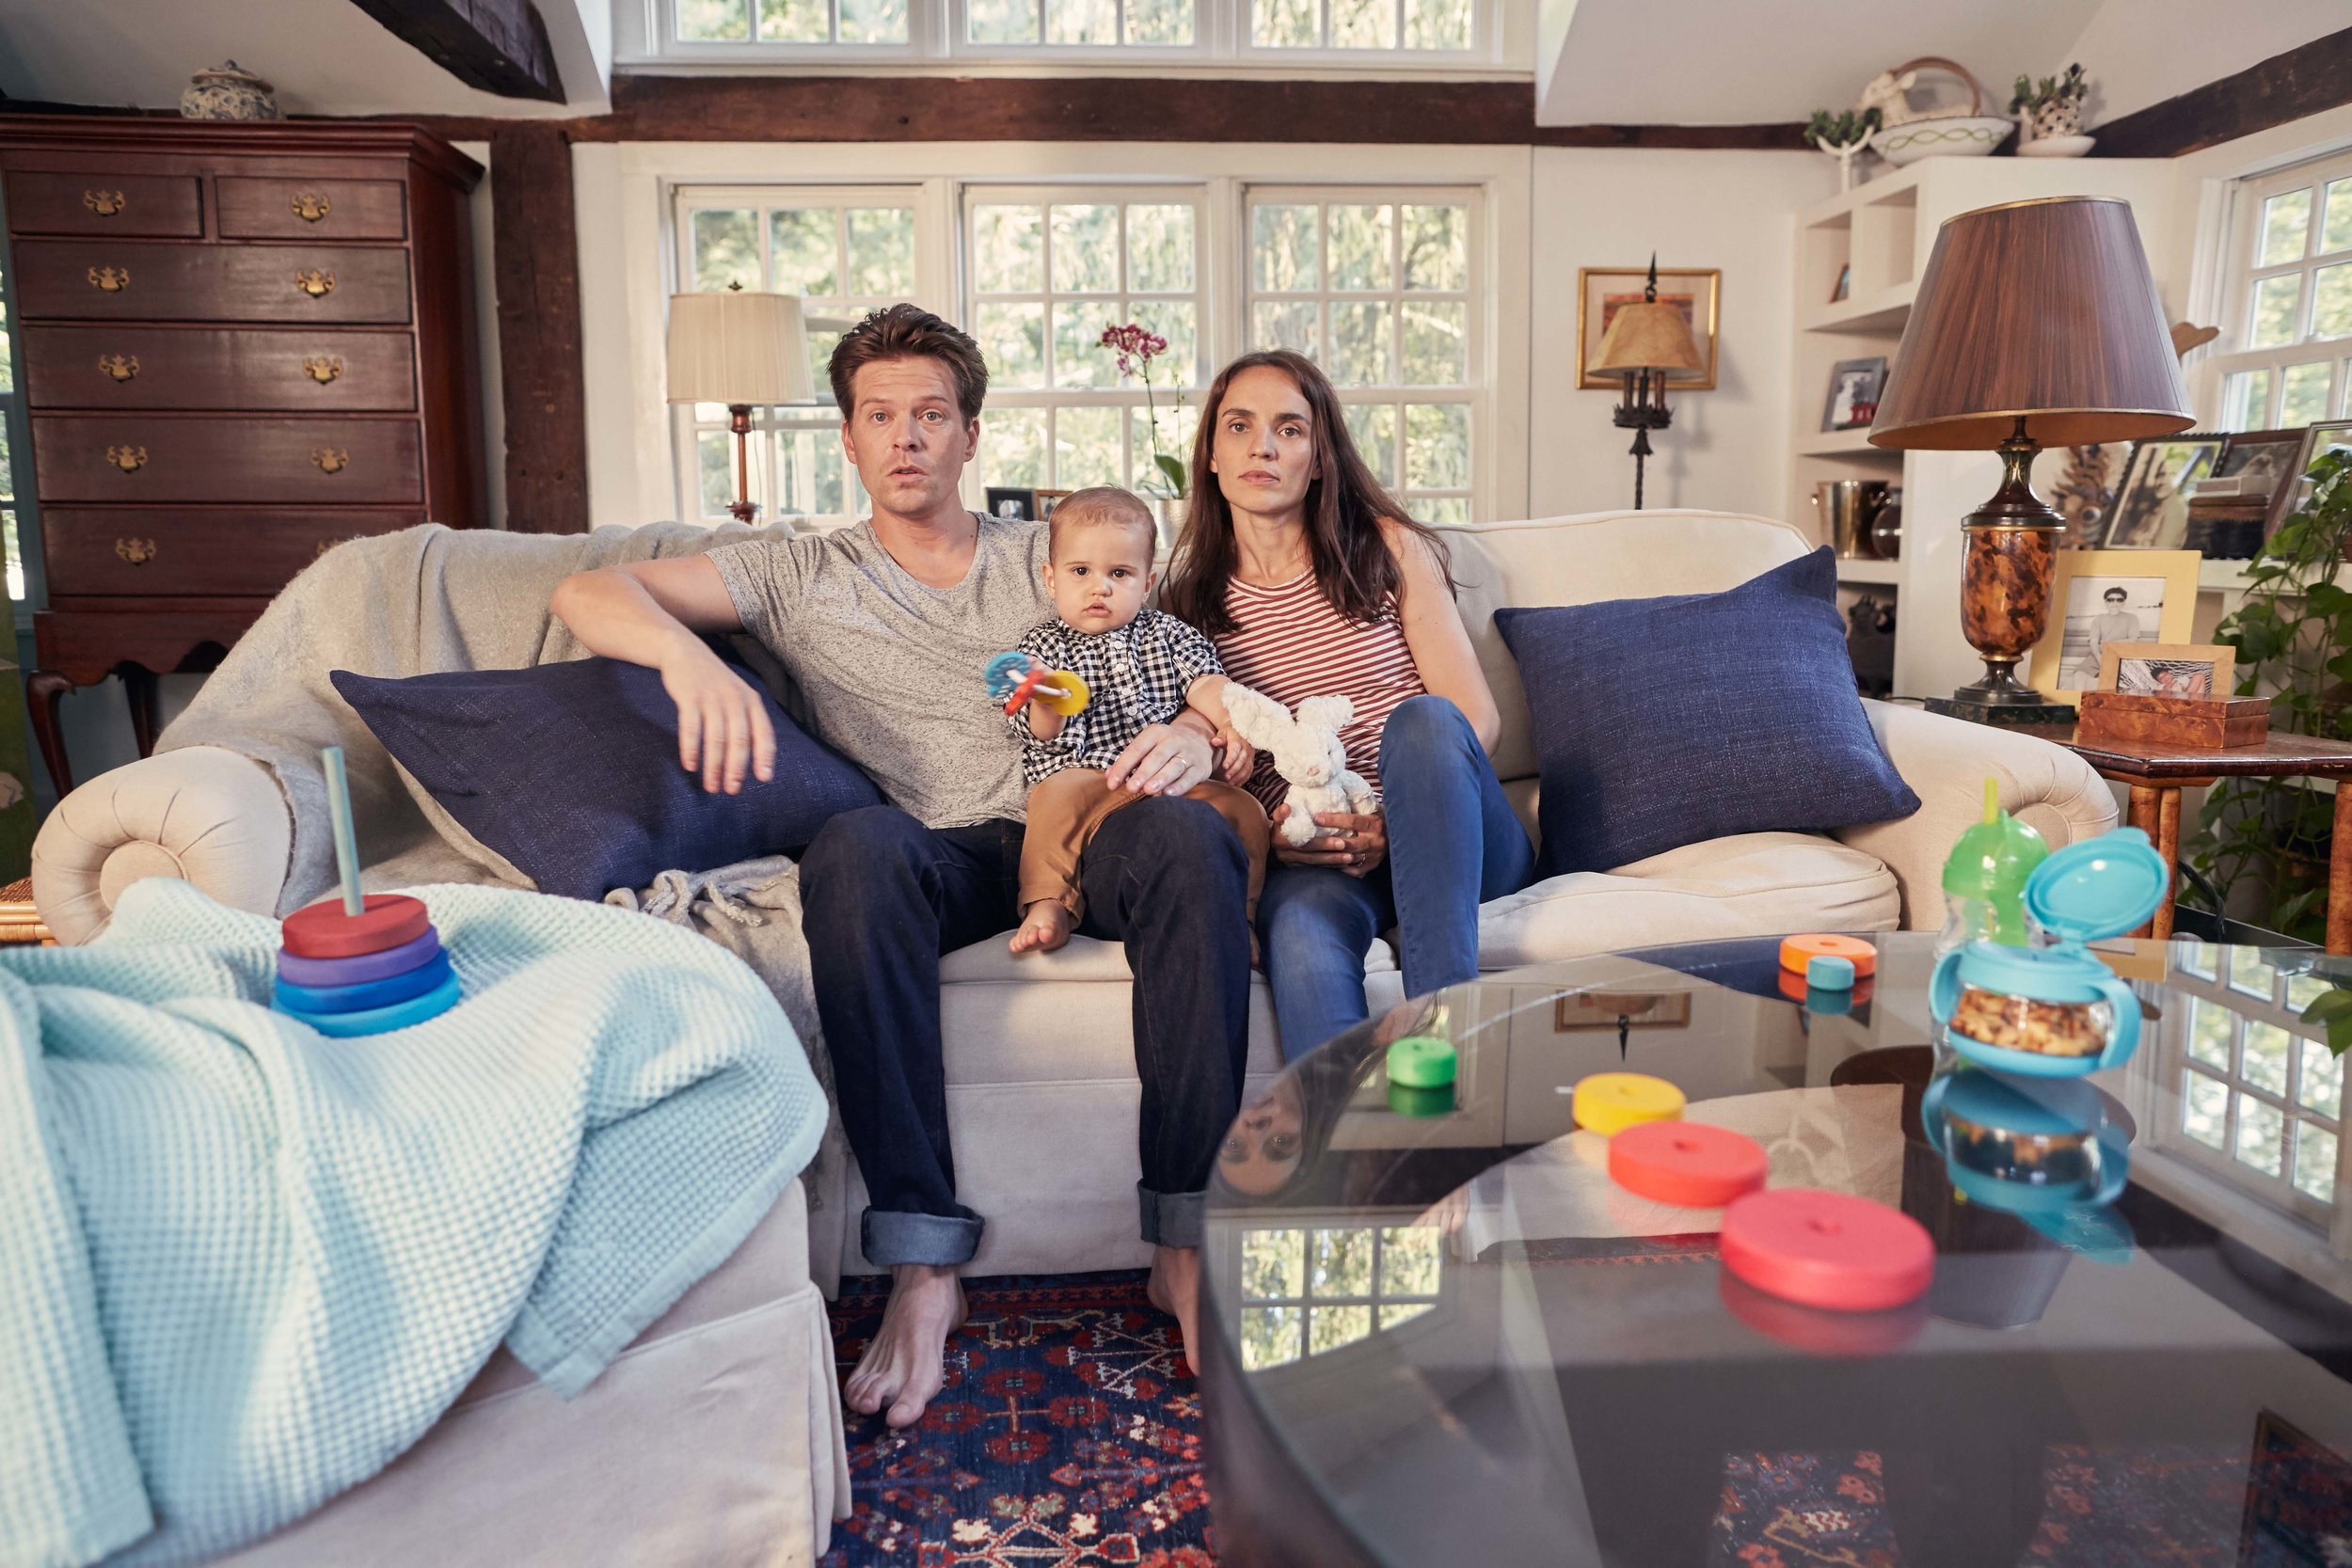 New York Life wanted a rebrand, and we decided to started off with their photo library. We wanted to capture real families in real moments, so we photographed the families in the moment before the moment.